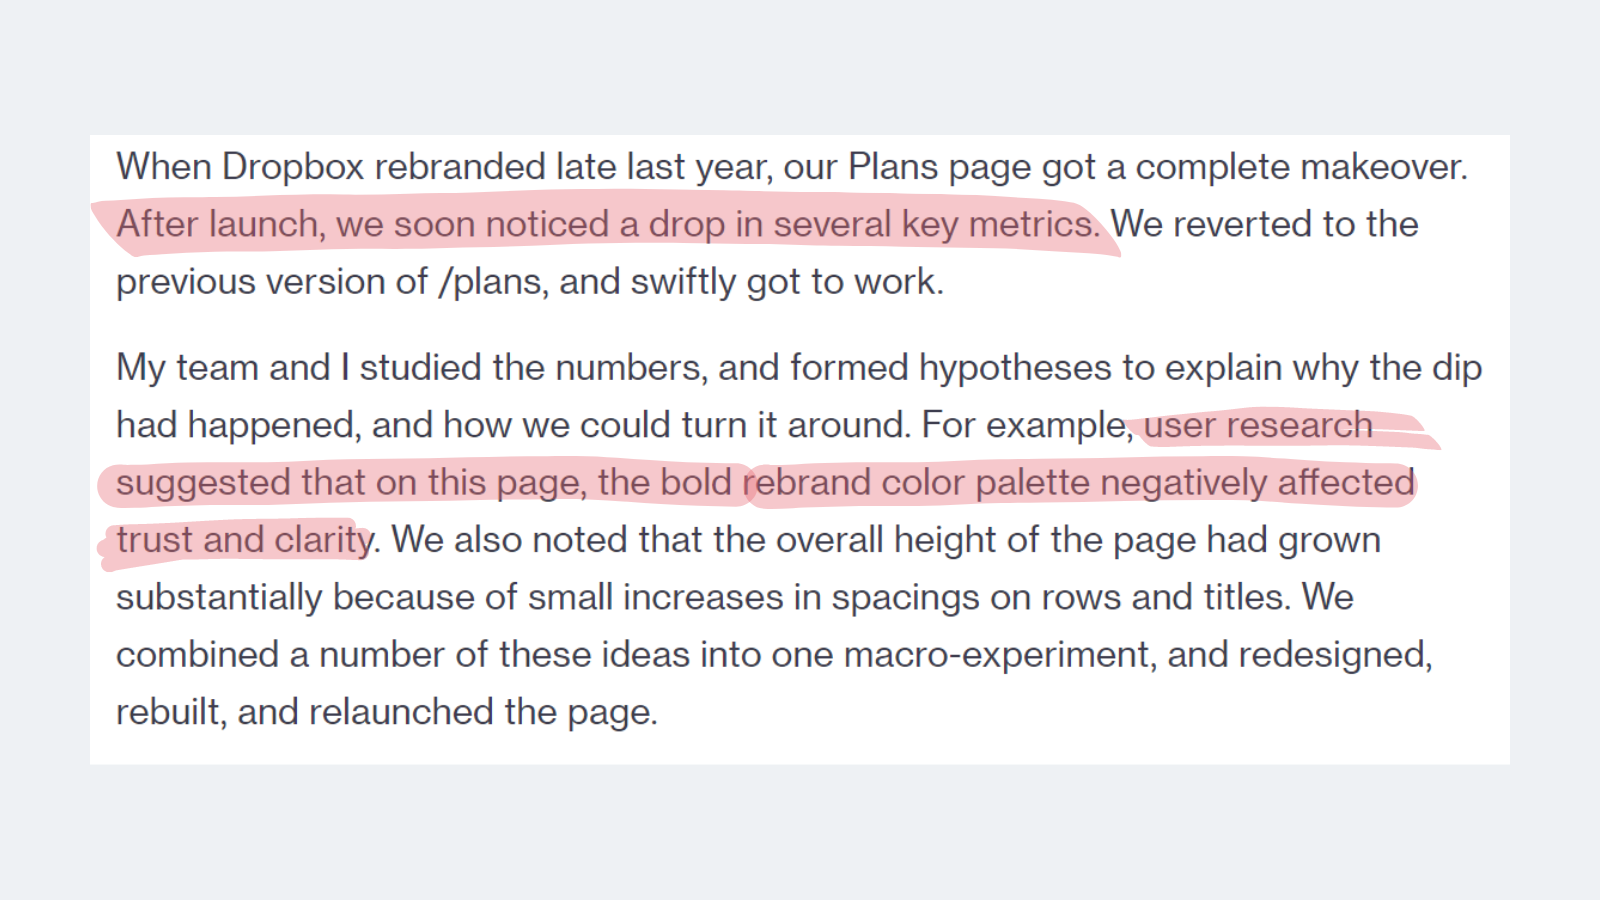 how the users behave in Dropbox redesigned pages